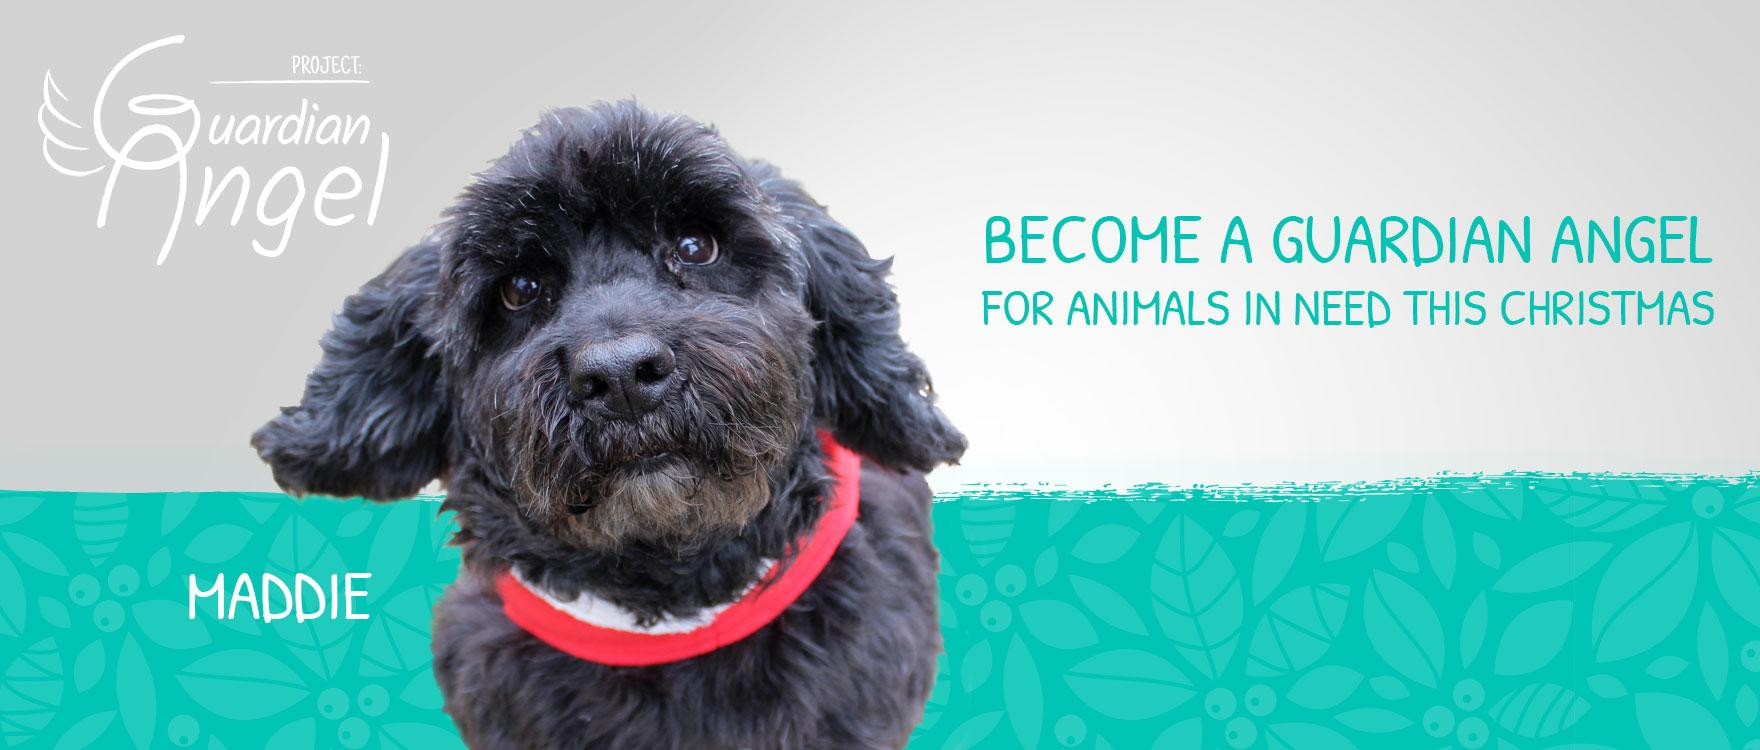 Become a Guardian Angel for animals in need this Christmas